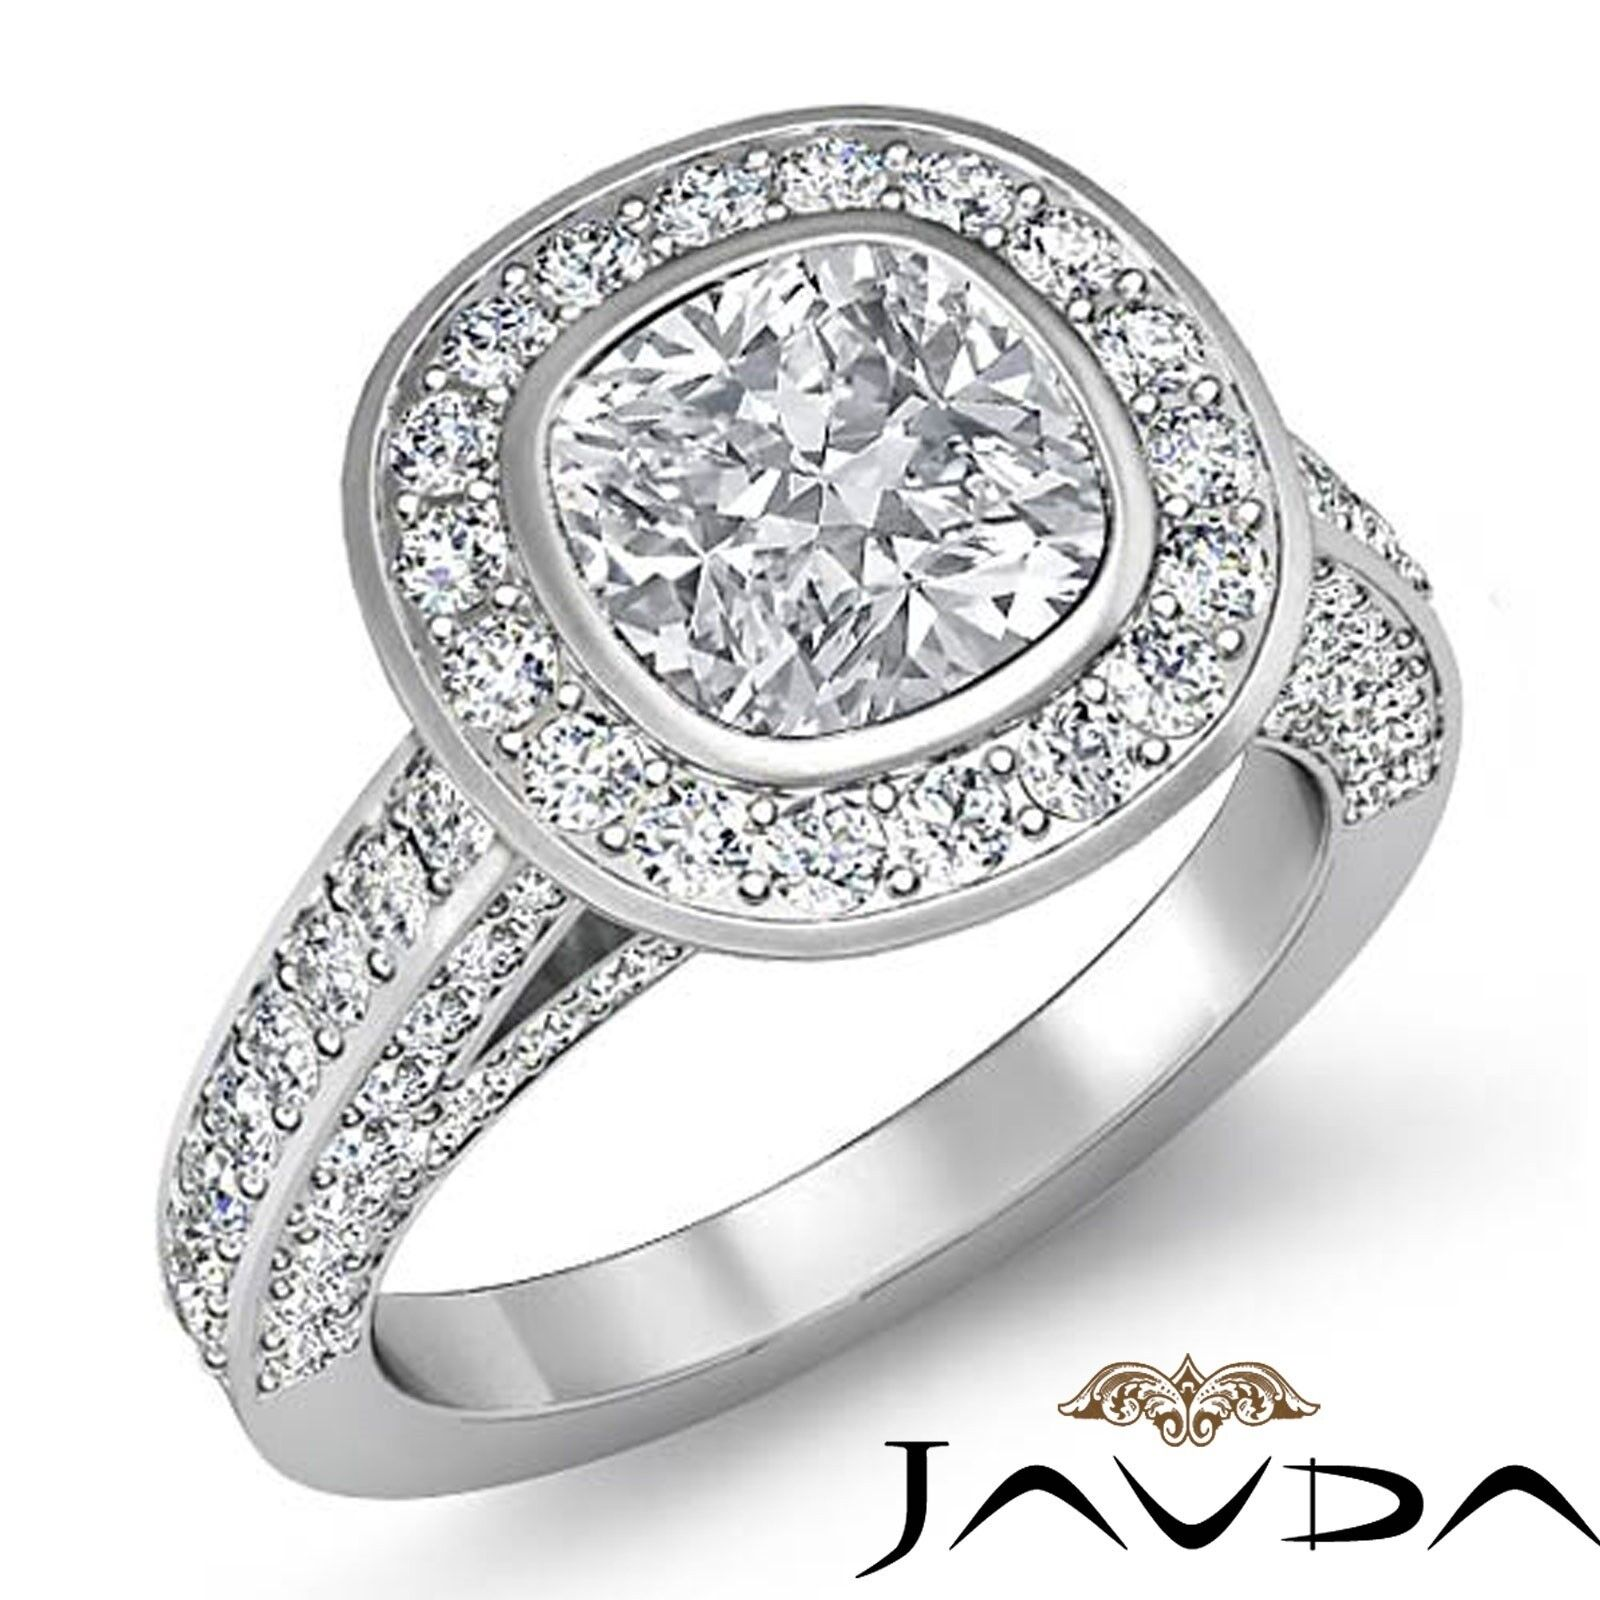 2.72ctw Halo Pave Bezel Accent Cushion Diamond Engagement Ring GIA H-SI1 W Gold